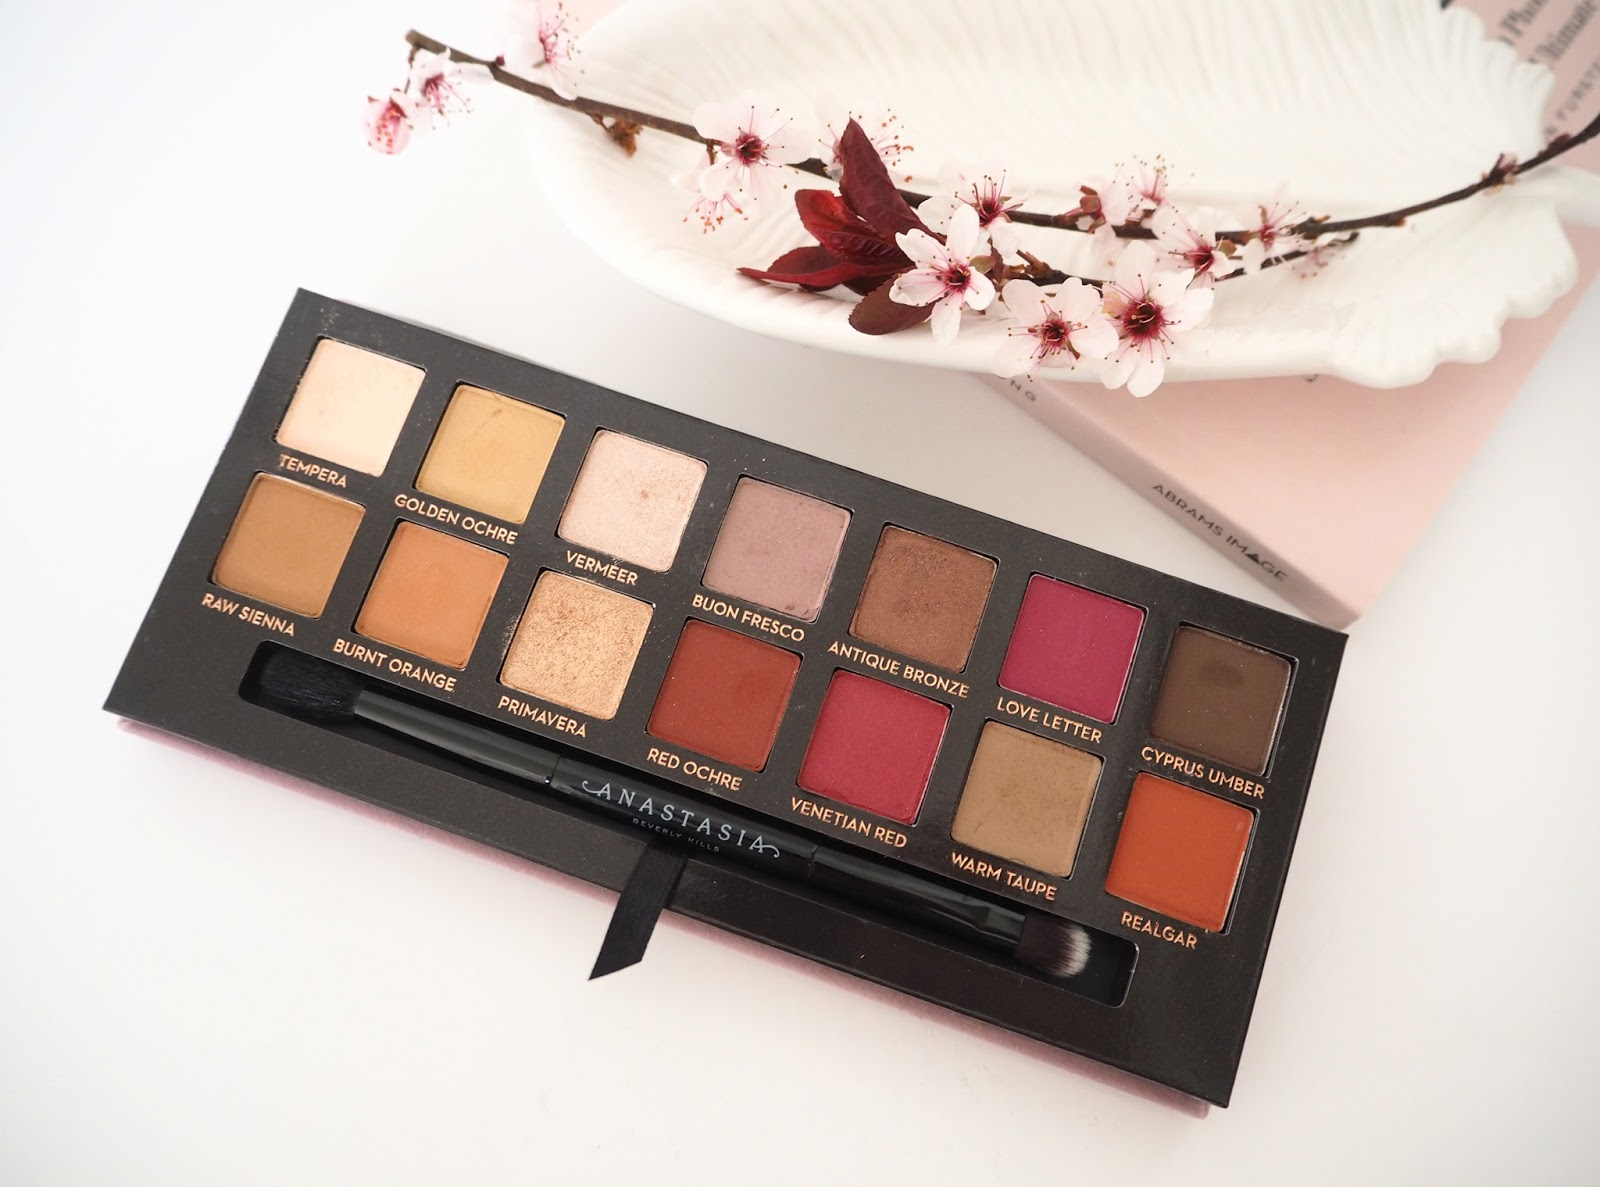 Loves List: March, Katie Kirk Loves, UK Blogger, Beauty Blogger, Lifestyle Blogger, Make Up Blogger, Skincare Blogger, Monthly Favourites, Beauty Review, Skincare Review, Anastasia Beverly Hills Modern Renaissance Palette, Cult Beauty, Make Up Look, Make Up Swatches